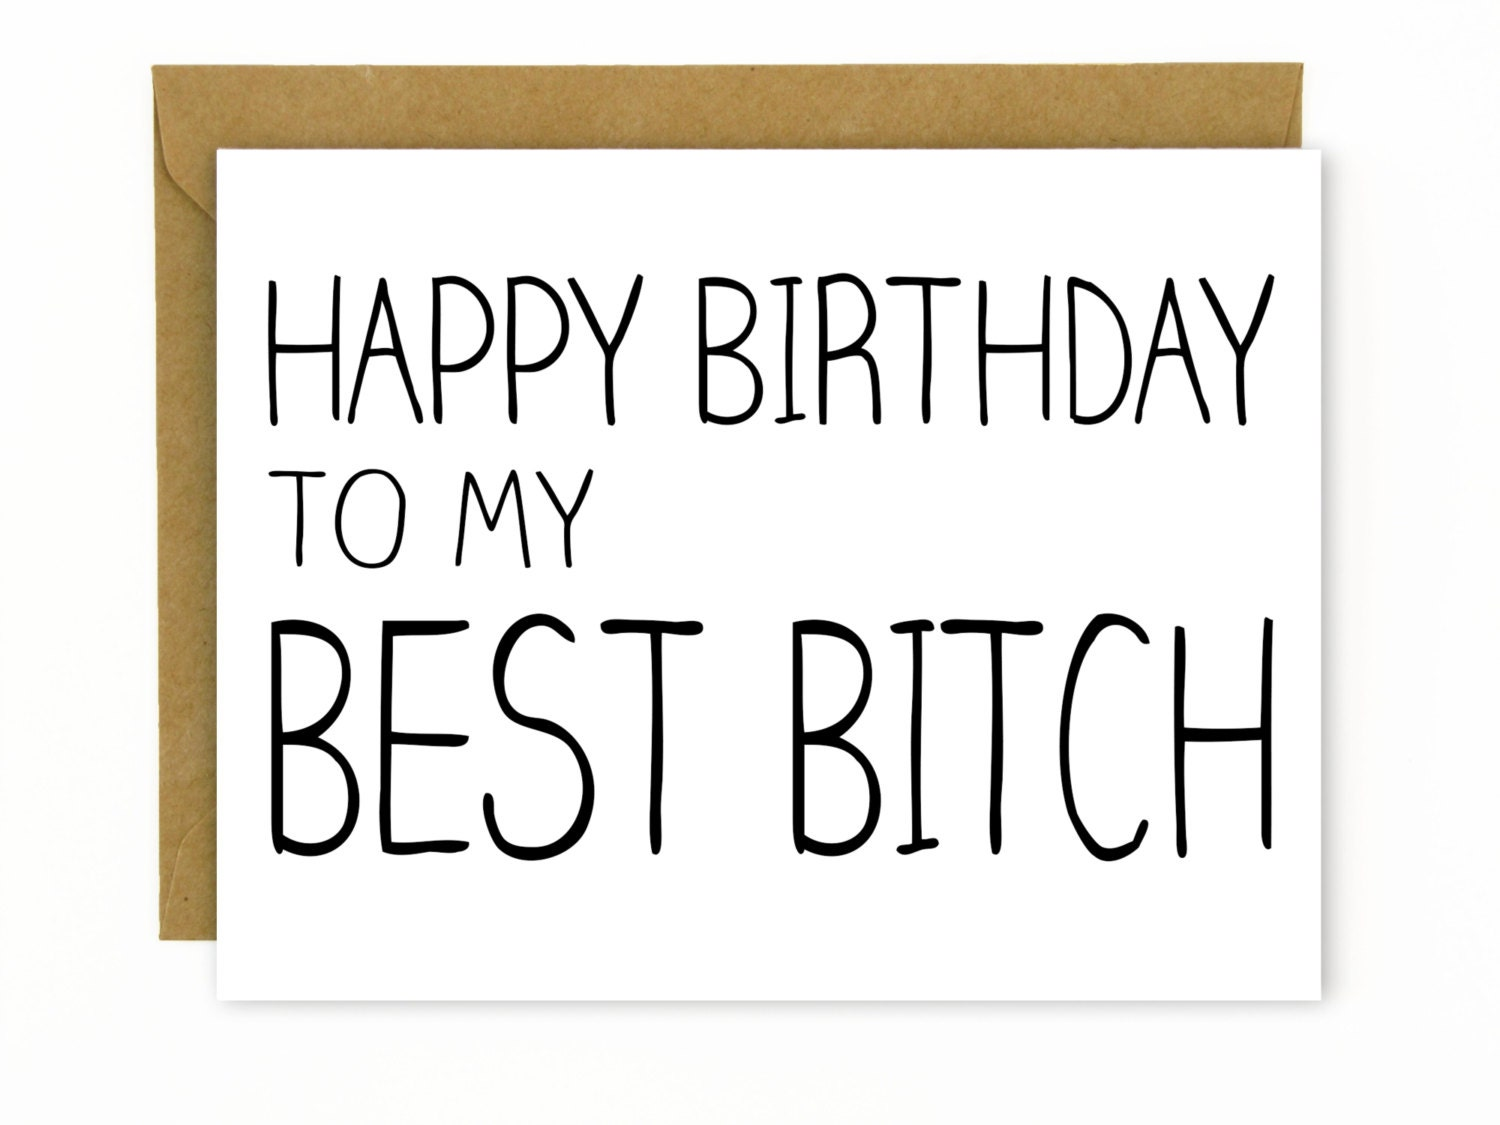 Funny Birthday Card for Friend Wife Mom Resting Bitch – Funny Birthday Card for Friend